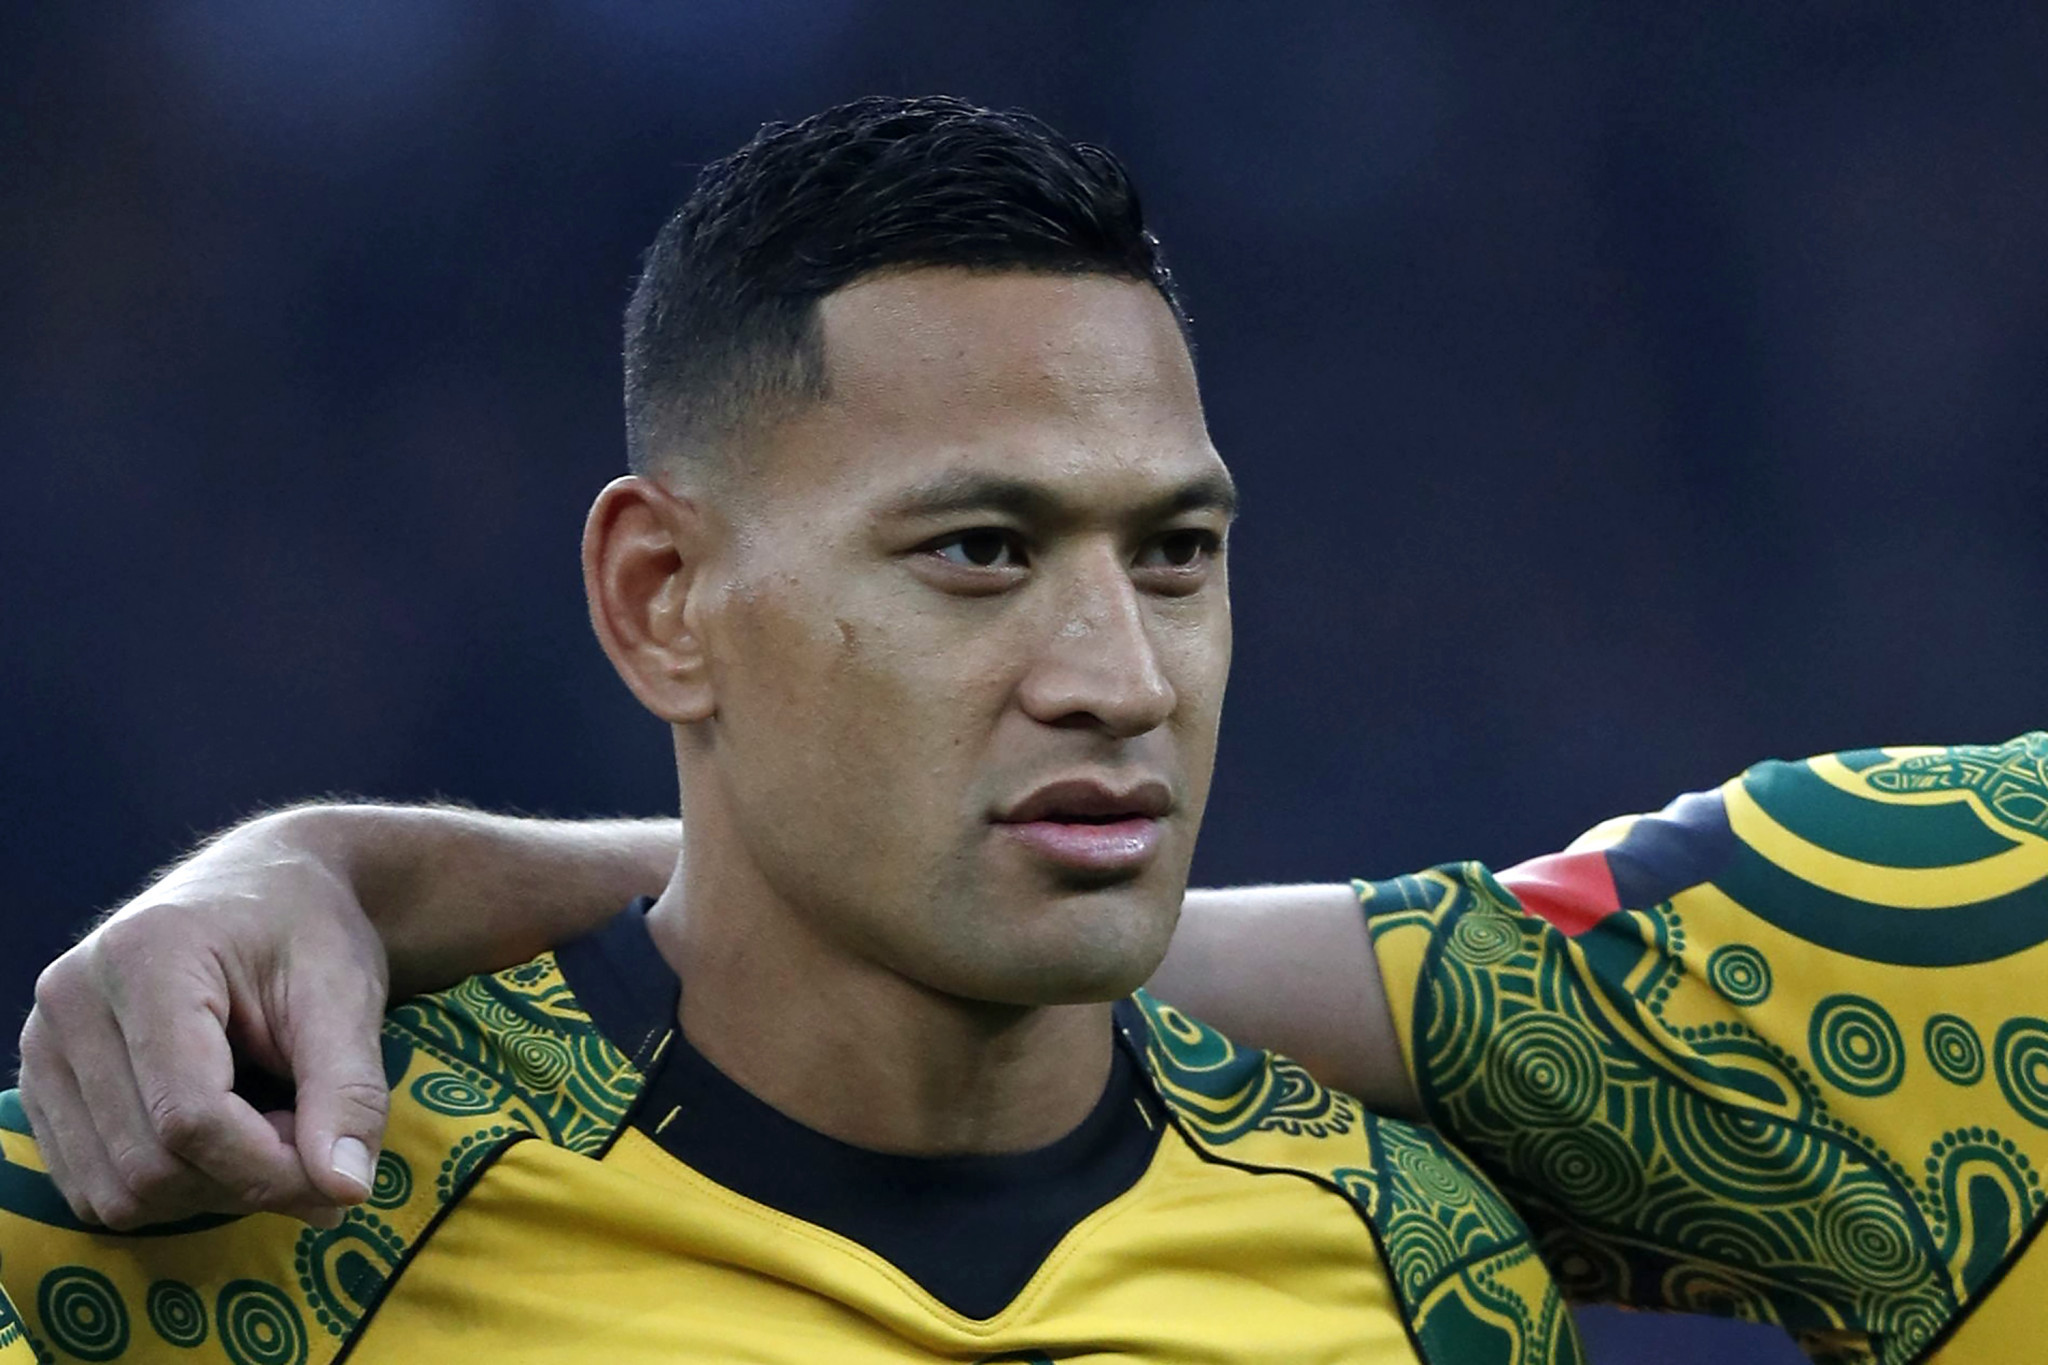 Israel Folau is formally challenging Rugby Australia's decision to end his contract over a comment on social media about homosexuals ©Getty Images